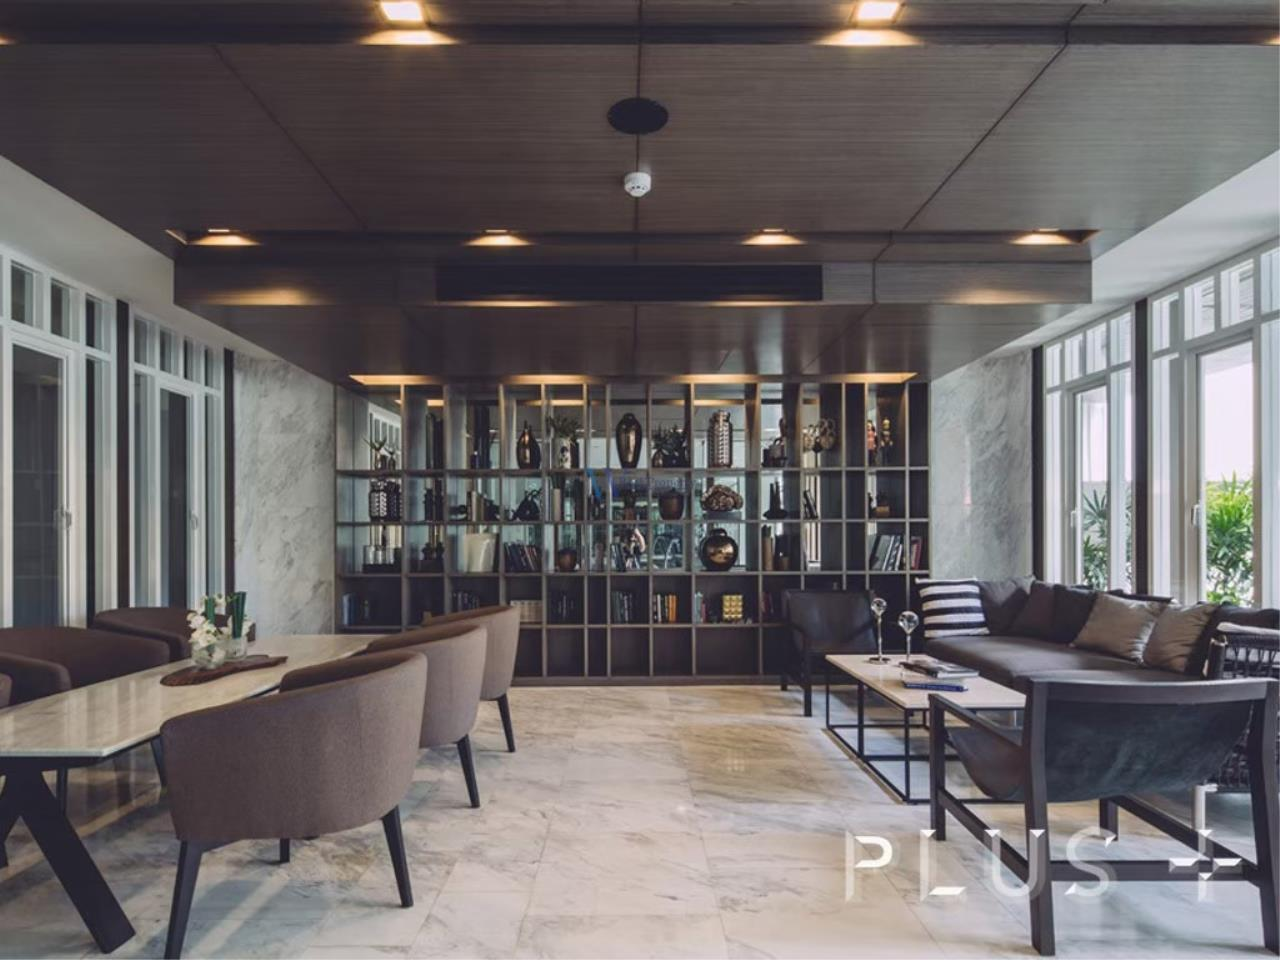 W Real Property Agency's 1 Bedroom Condo for rent in The Base Downtown Phuket, Wichit, Phuket 3